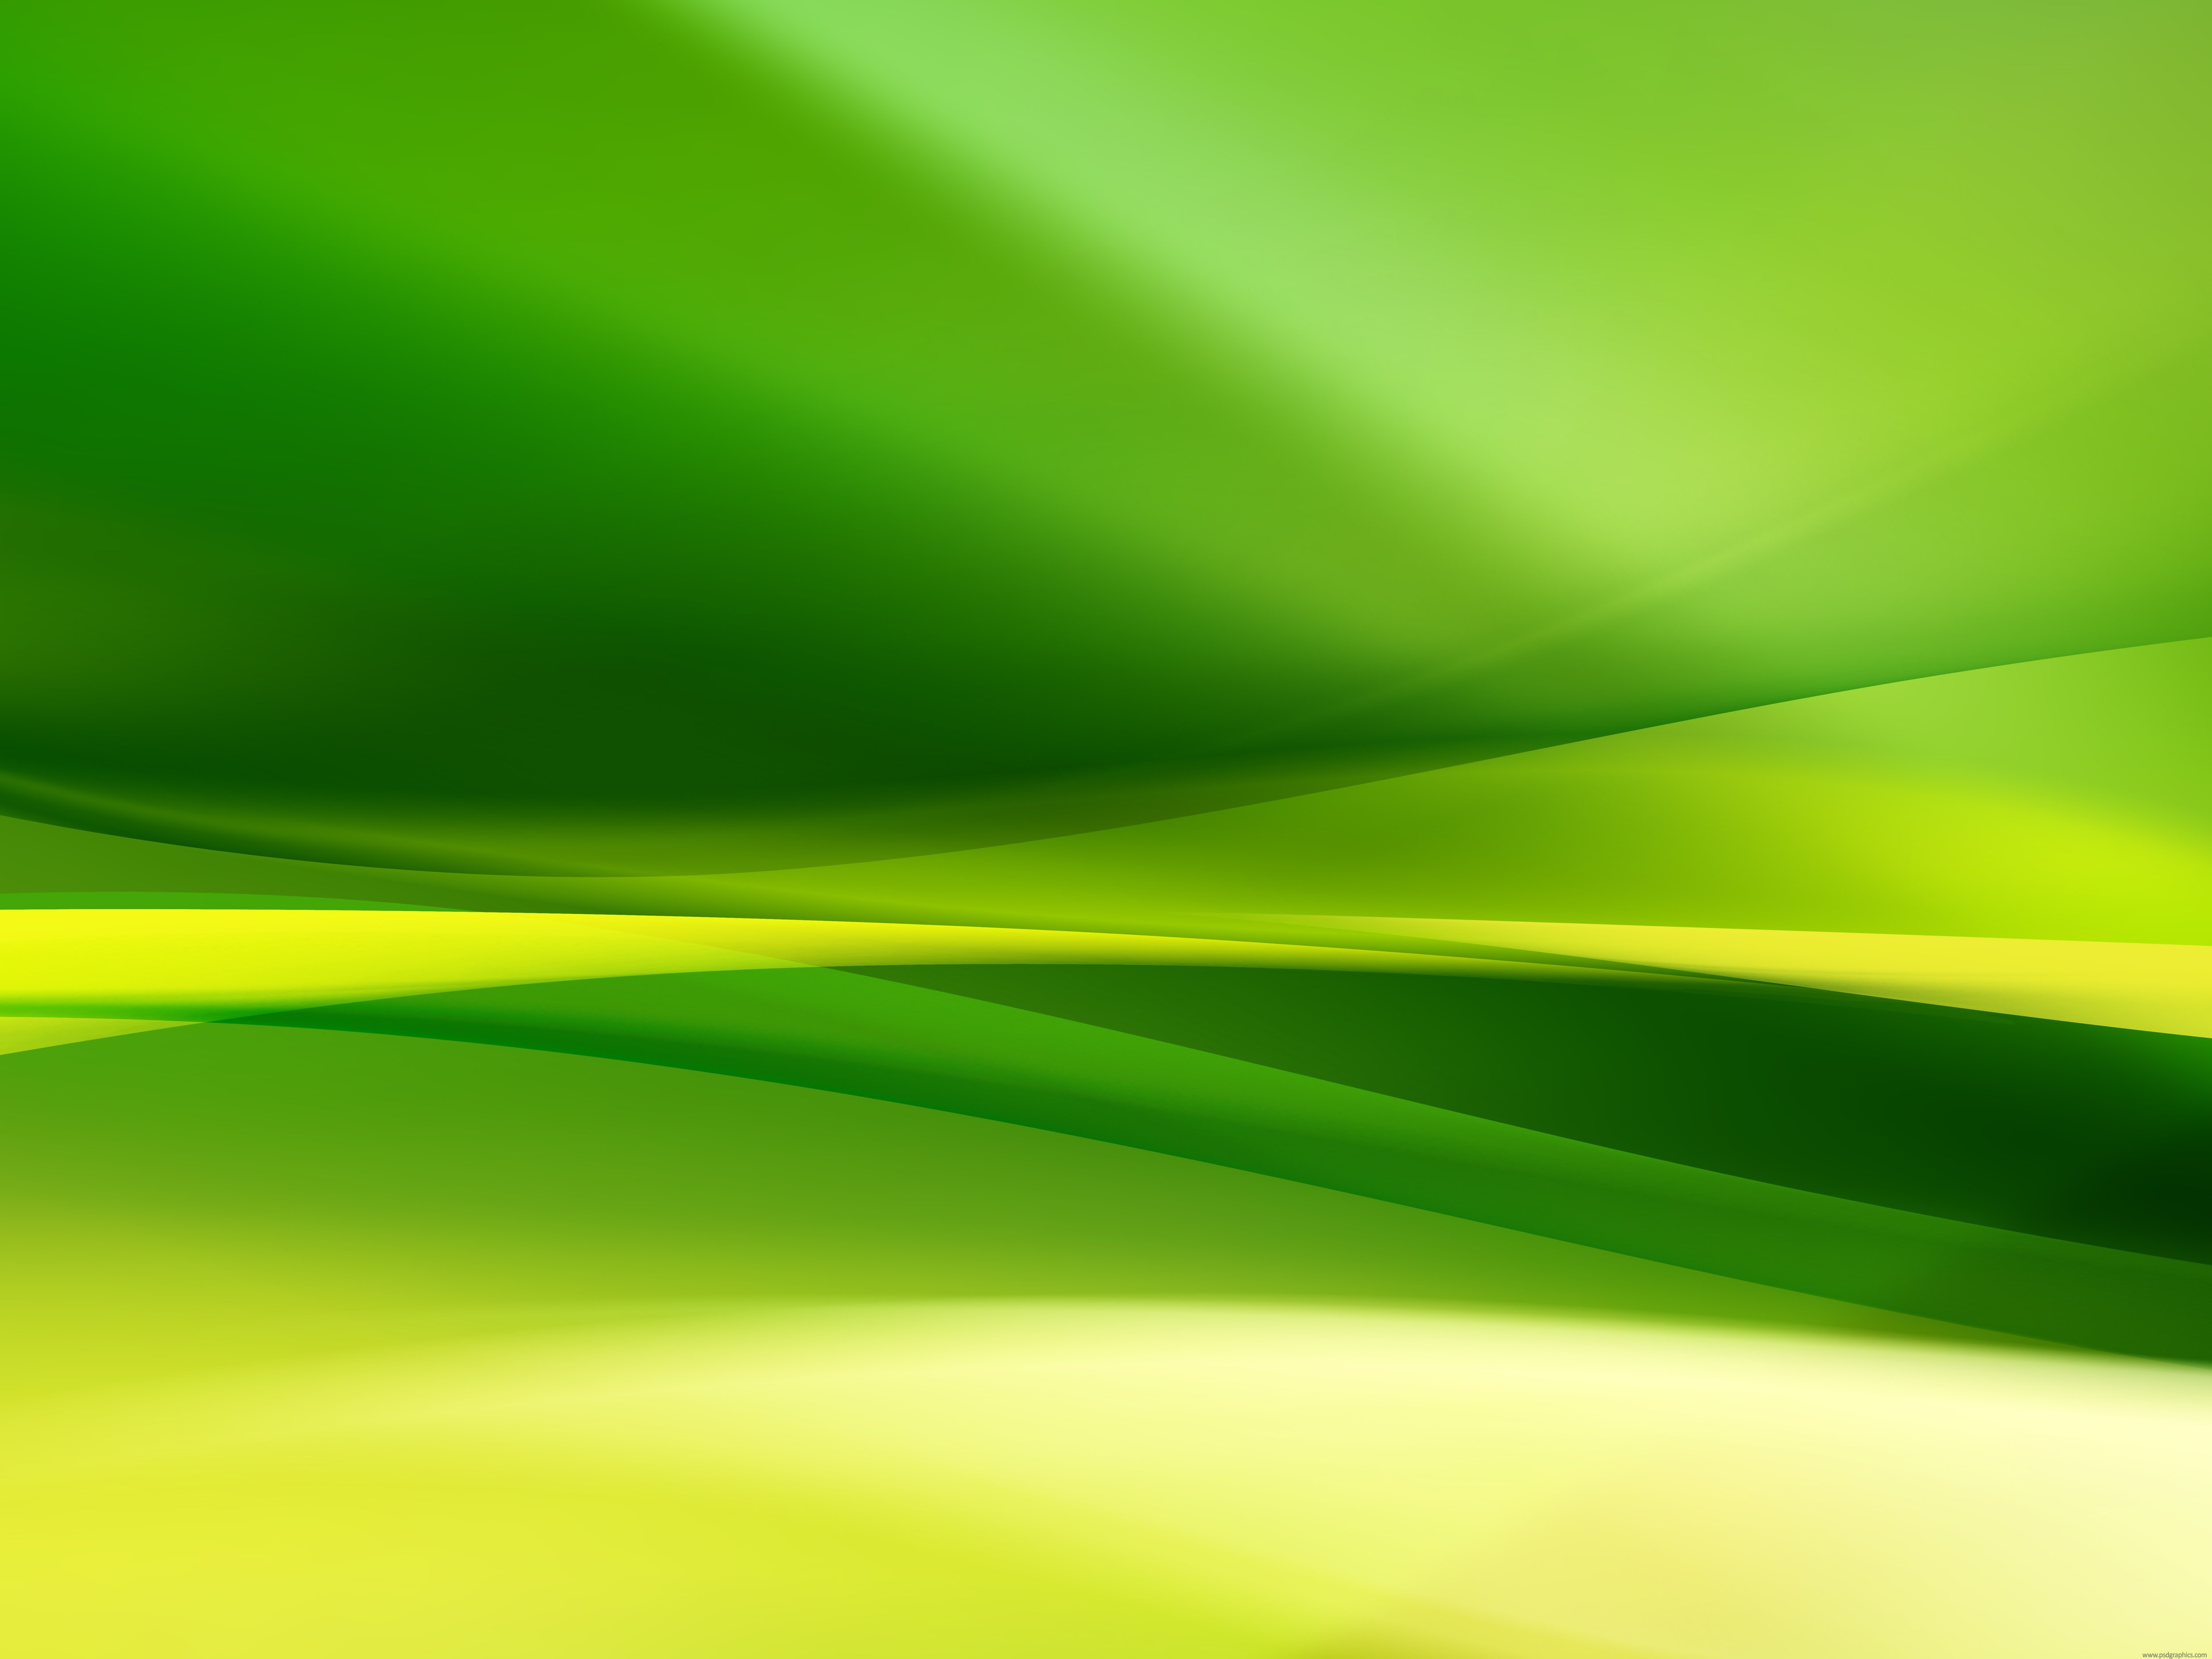 Simple Background Design Green 5000x3750